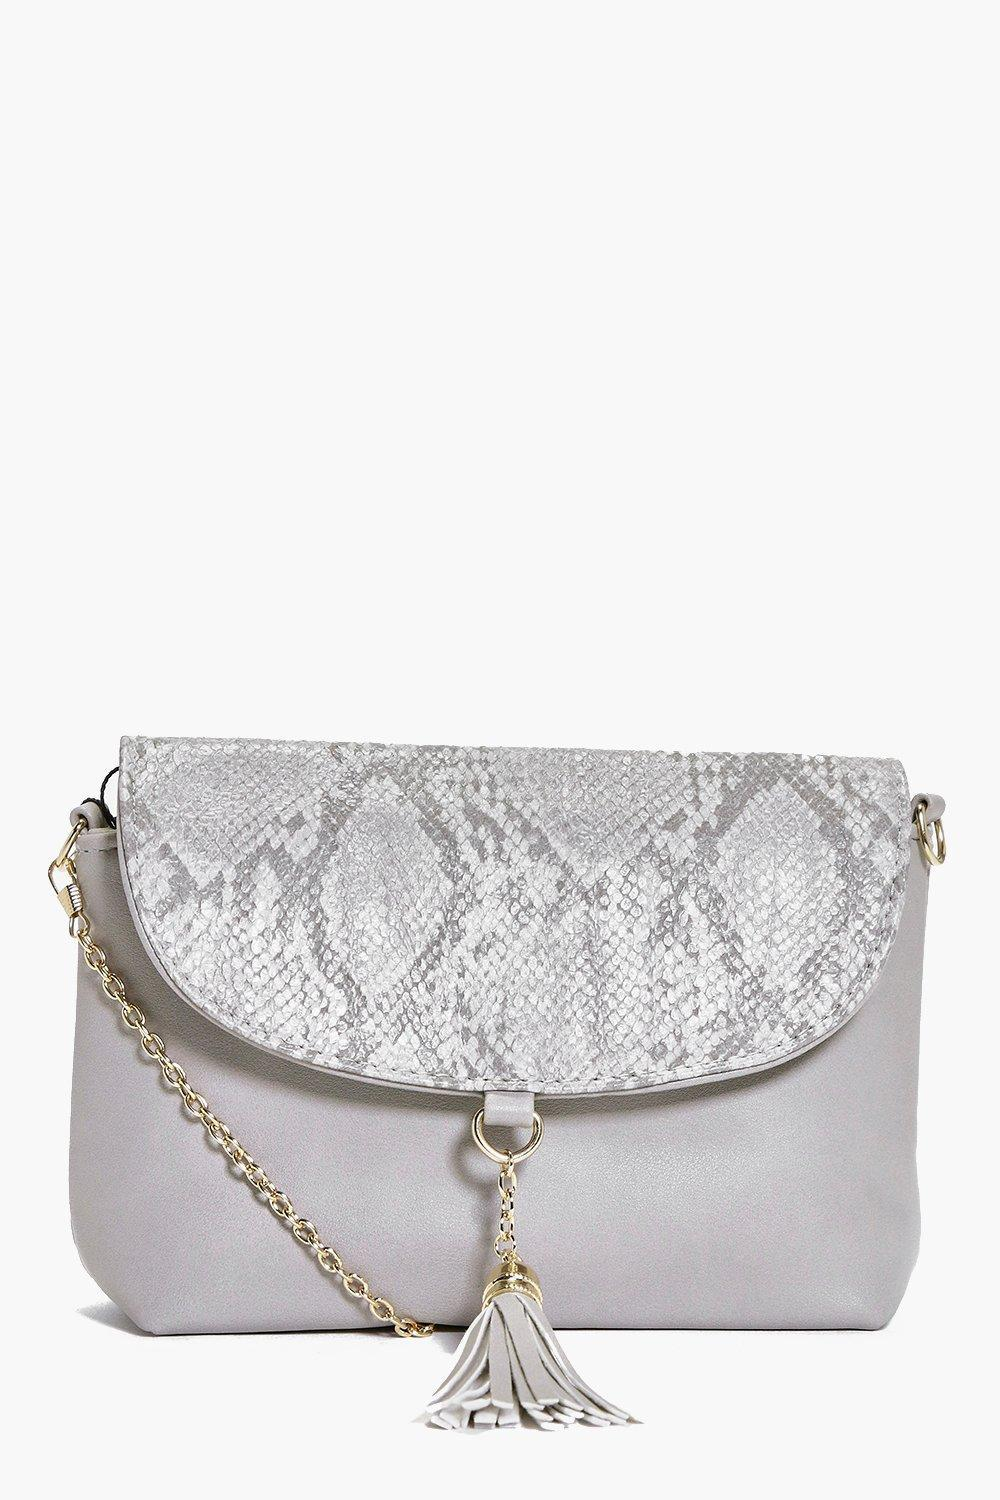 Faux Snake Tassel Detail Cross Body Bag Grey - predominant colour: light grey; occasions: evening; type of pattern: light; style: shoulder; length: across body/long; size: standard; material: faux leather; embellishment: tassels; pattern: animal print; finish: plain; season: a/w 2016; wardrobe: event